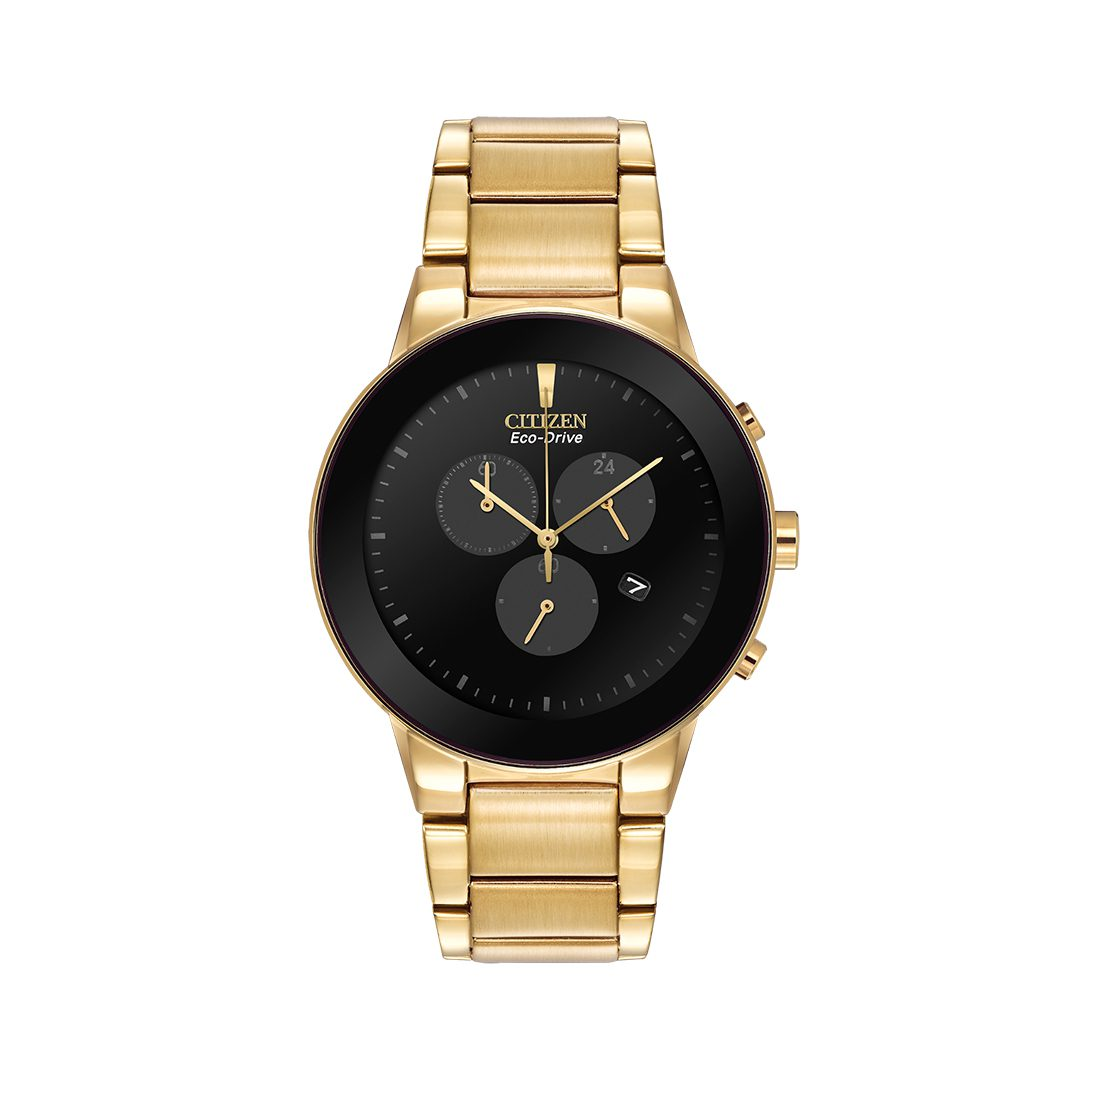 Men's Citizen Watch gold tone stainless steel with black dial